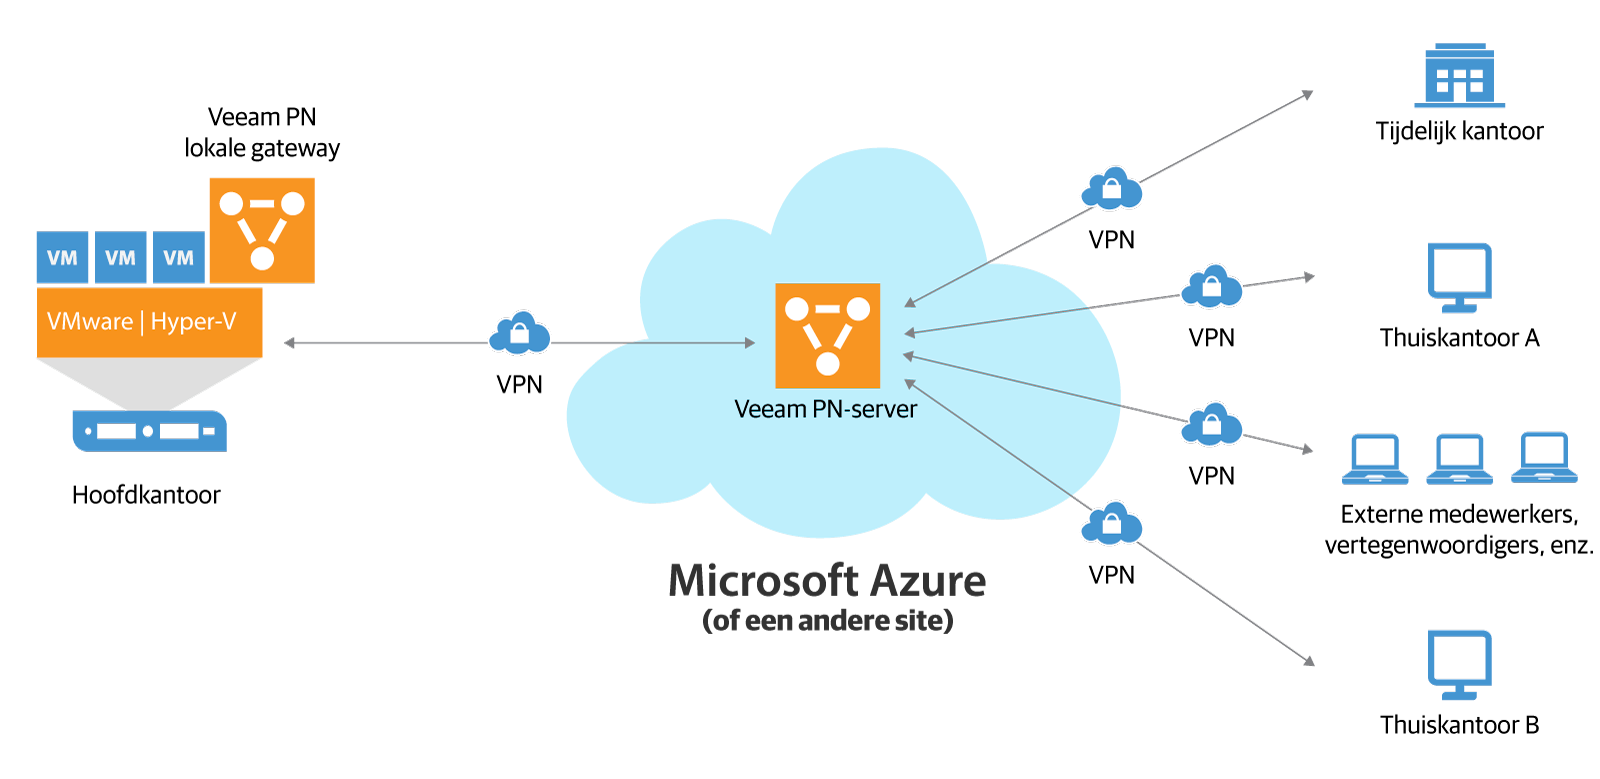 veeam_pn_for_microsoft_azure_nl.png